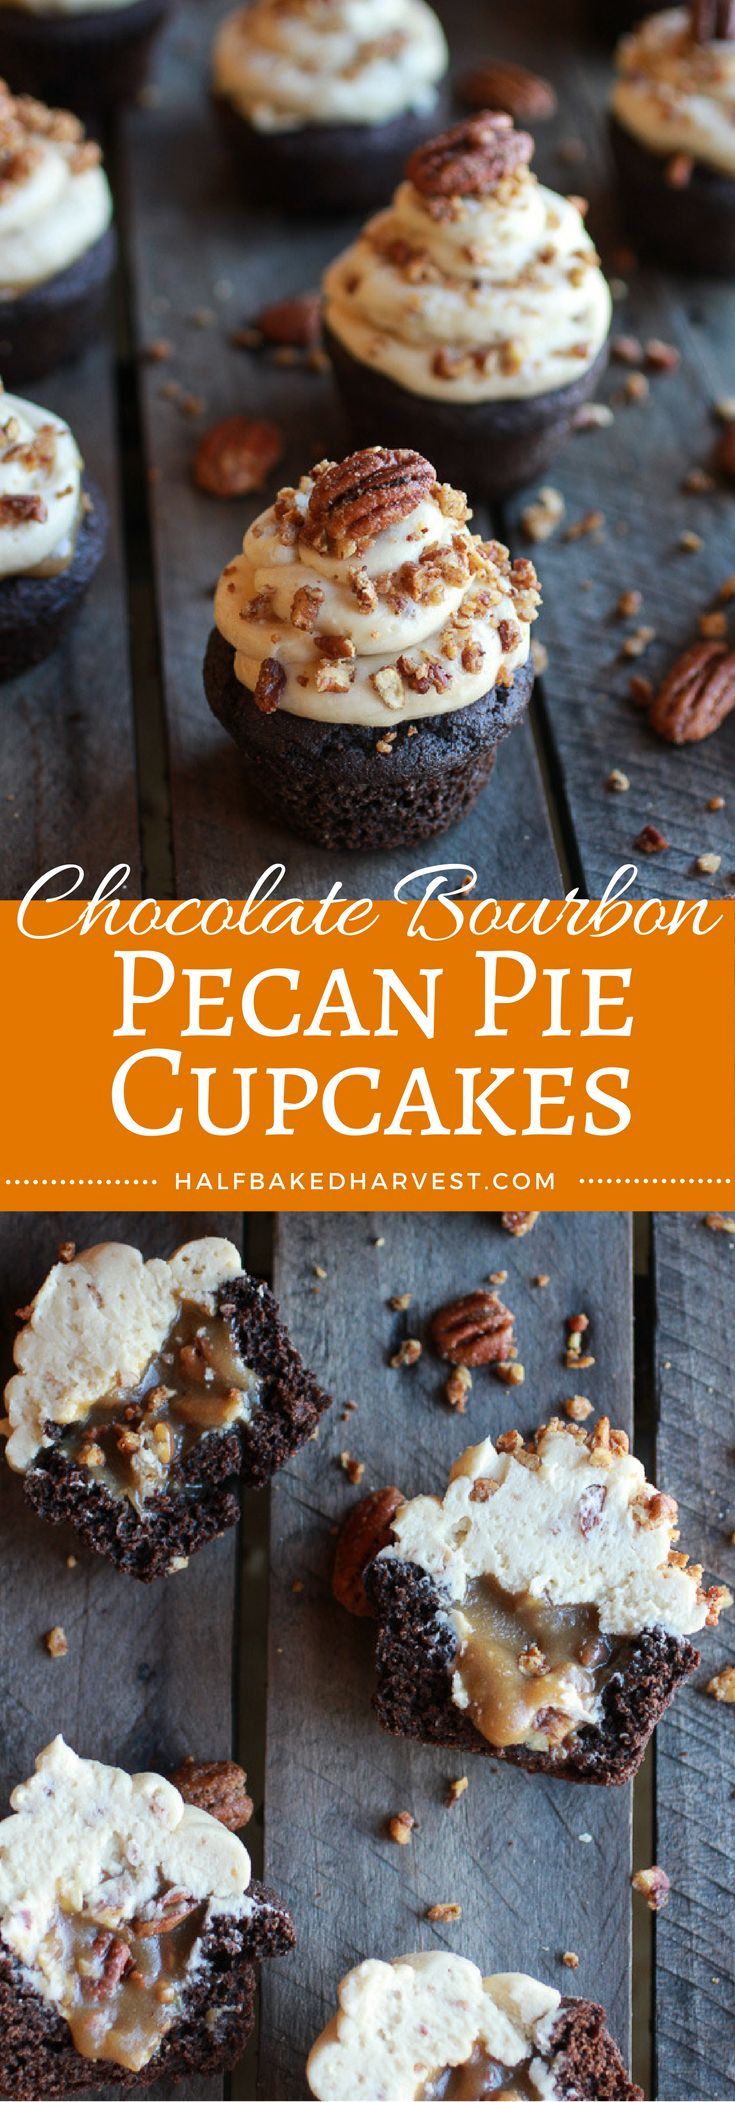 Chocolate Bourbon Pecan Pie Cupcakes with Butter Pecan Frosting | halfbakedharvest.com @hbharvest